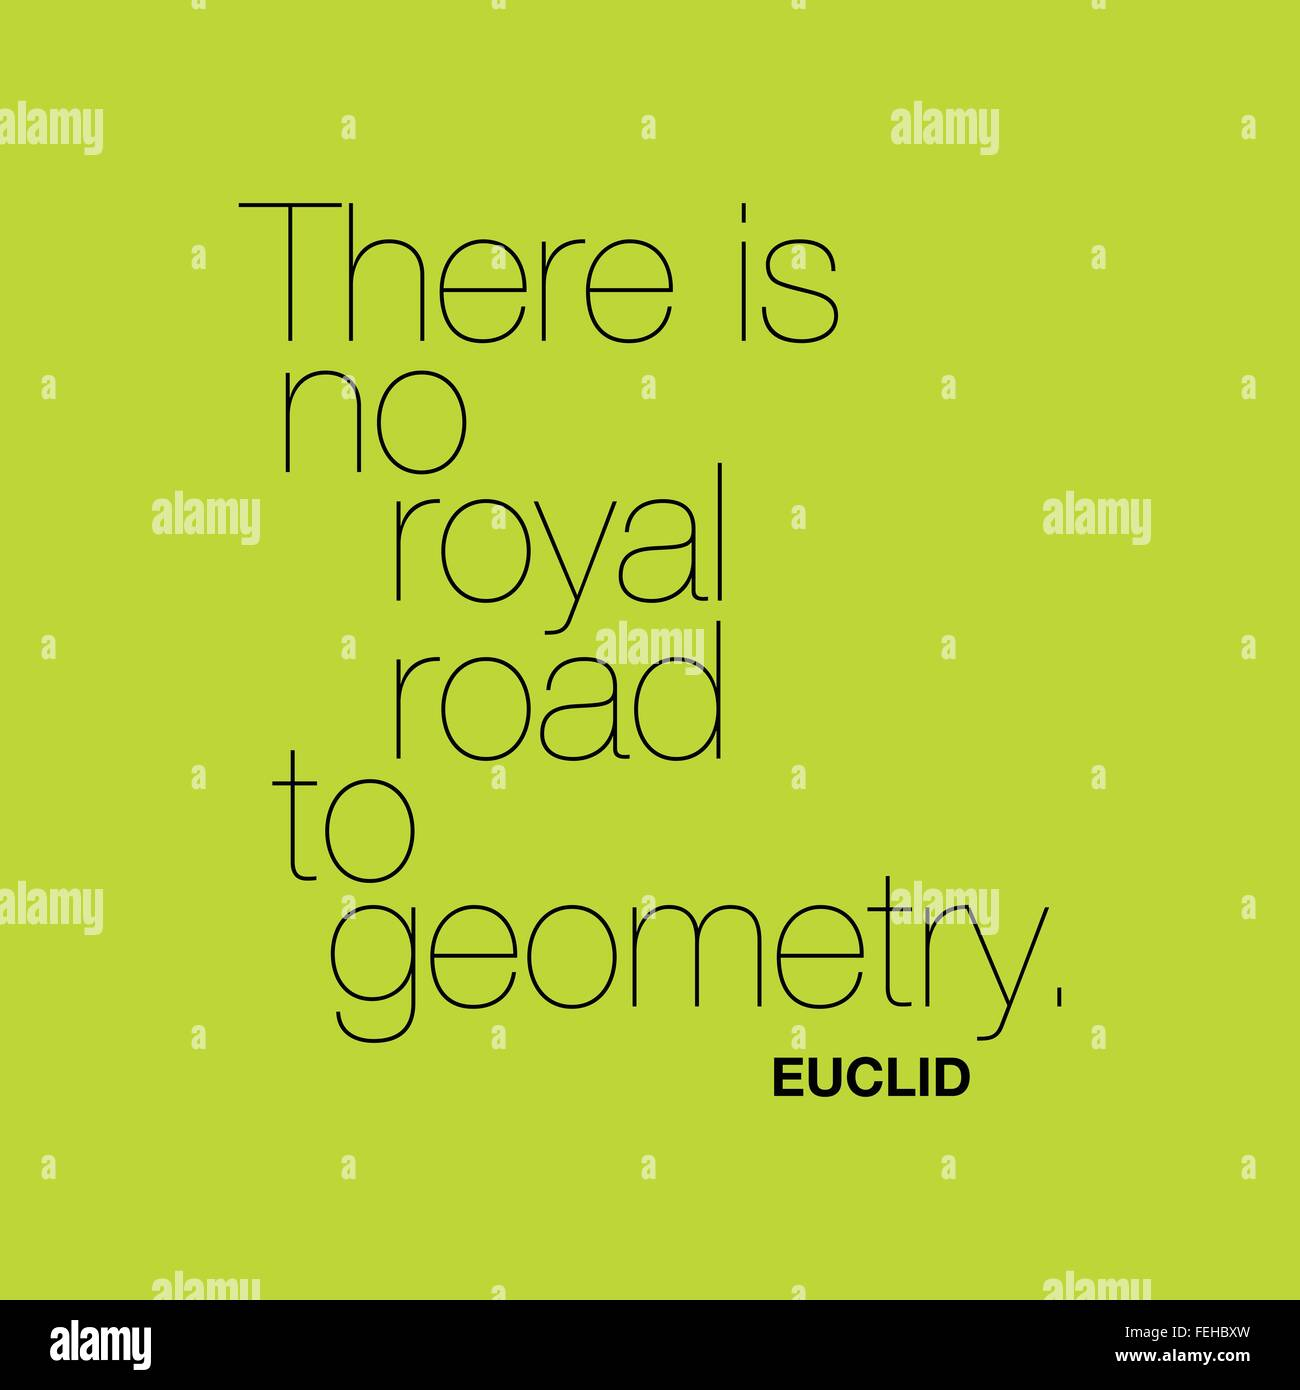 'There is no royal road to geometry.' Euclid - Stock Image